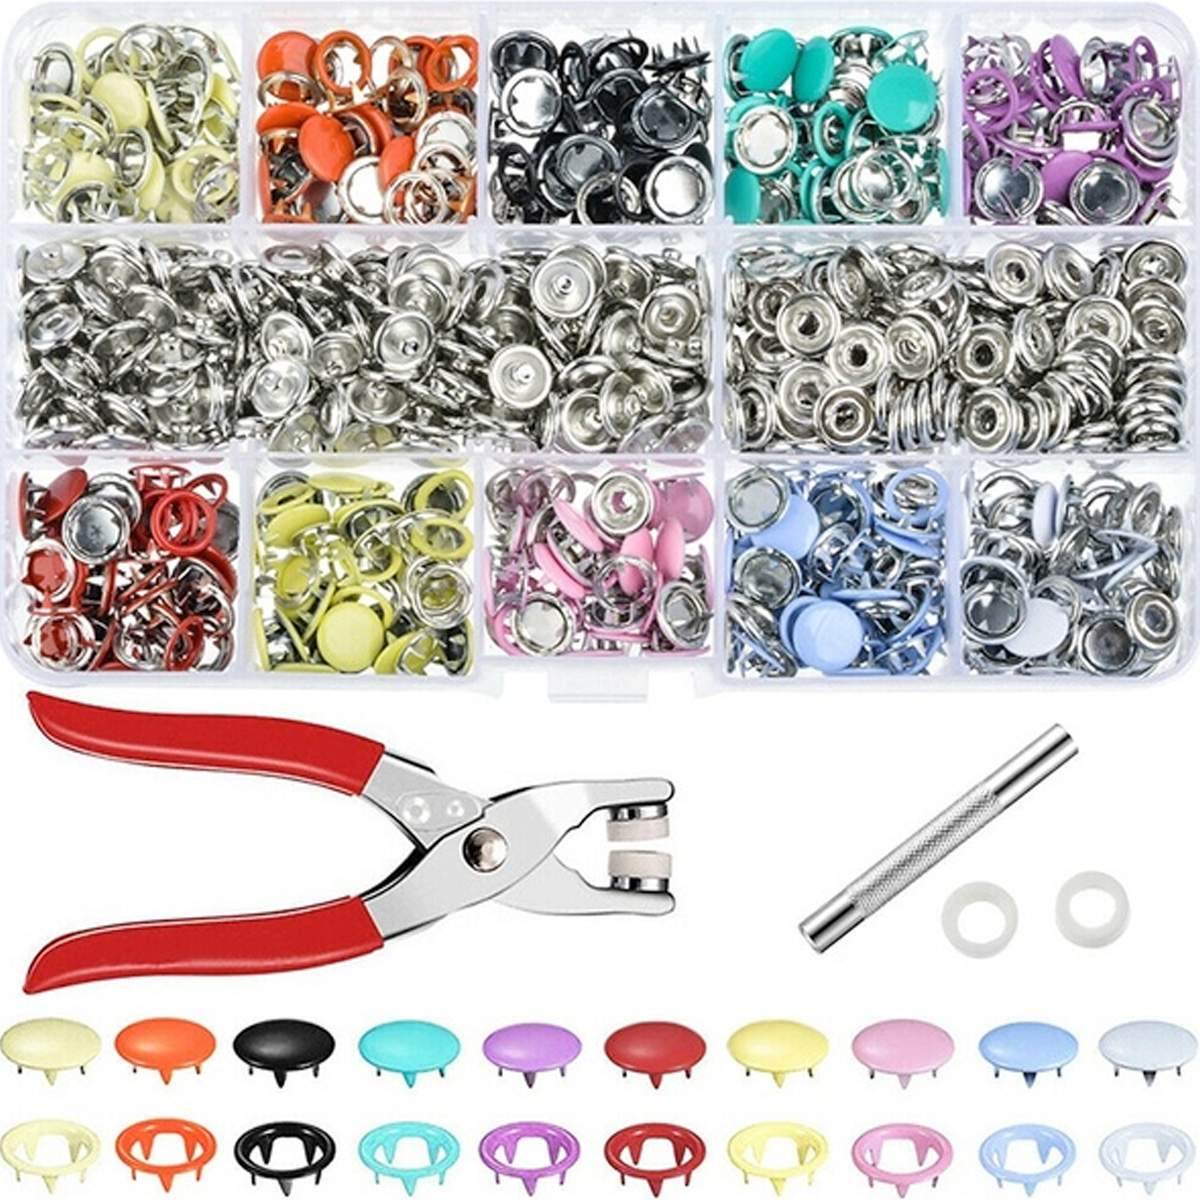 9.5/<font><b>10mm</b></font> 100/200Sets Metal Sewing <font><b>Buttons</b></font> Prong Ring Press Studs Snap Fasteners + Clip Pliers Sewing Tool DIY Clothes Decoration image